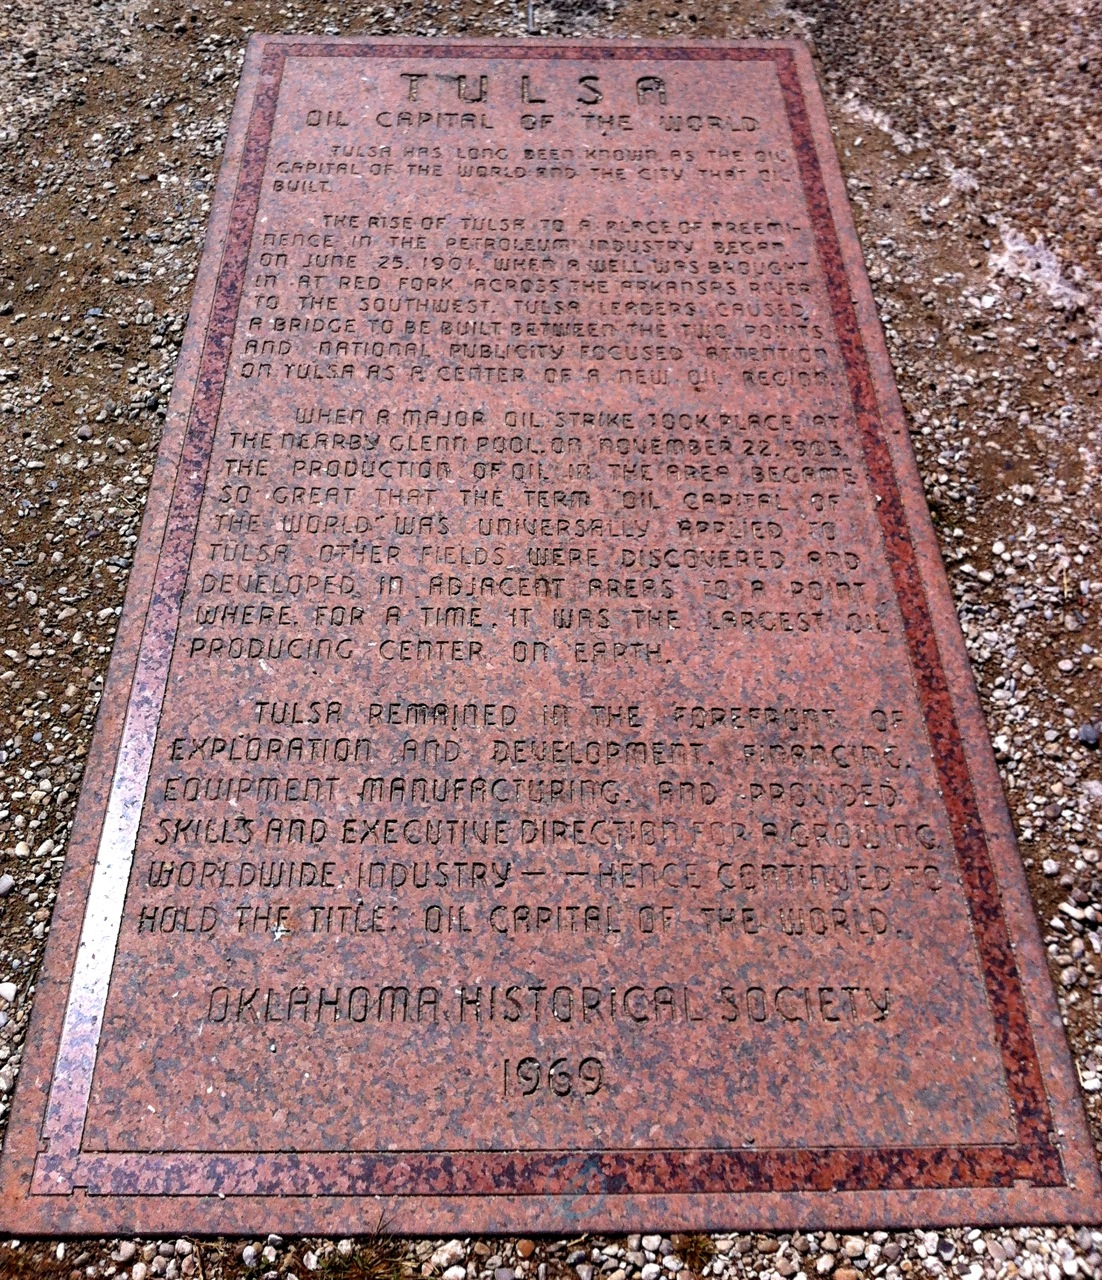 oil capital of the world historic marker